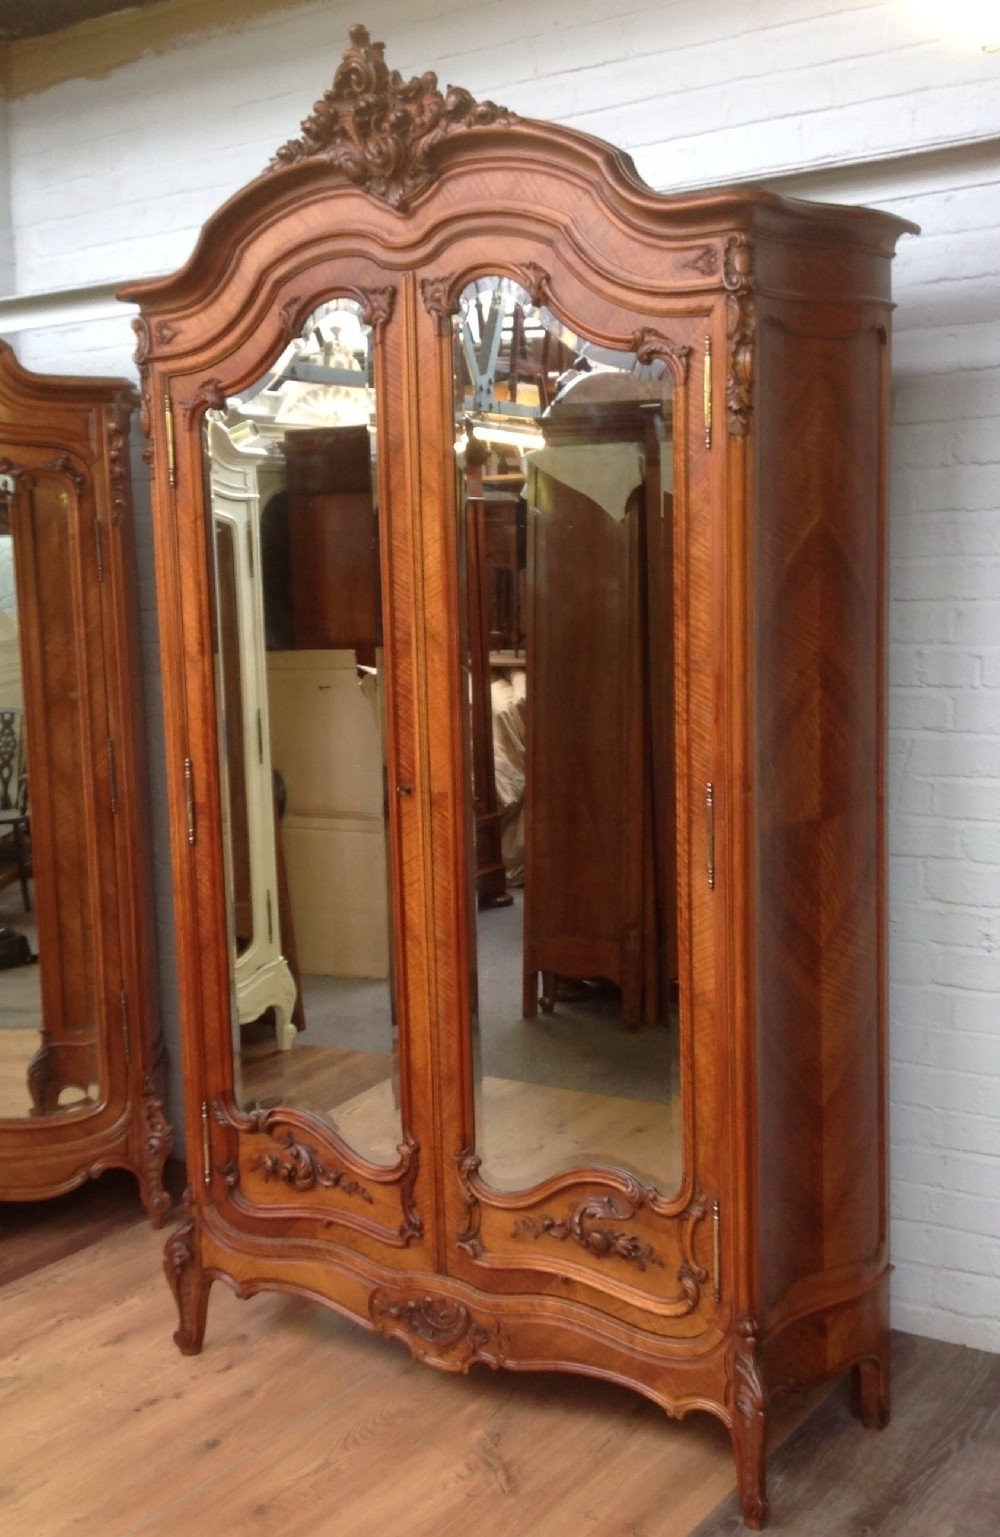 French Armoire Wardrobes Within Latest Antique French Walnut Armoire With Carved Doors (View 8 of 15)